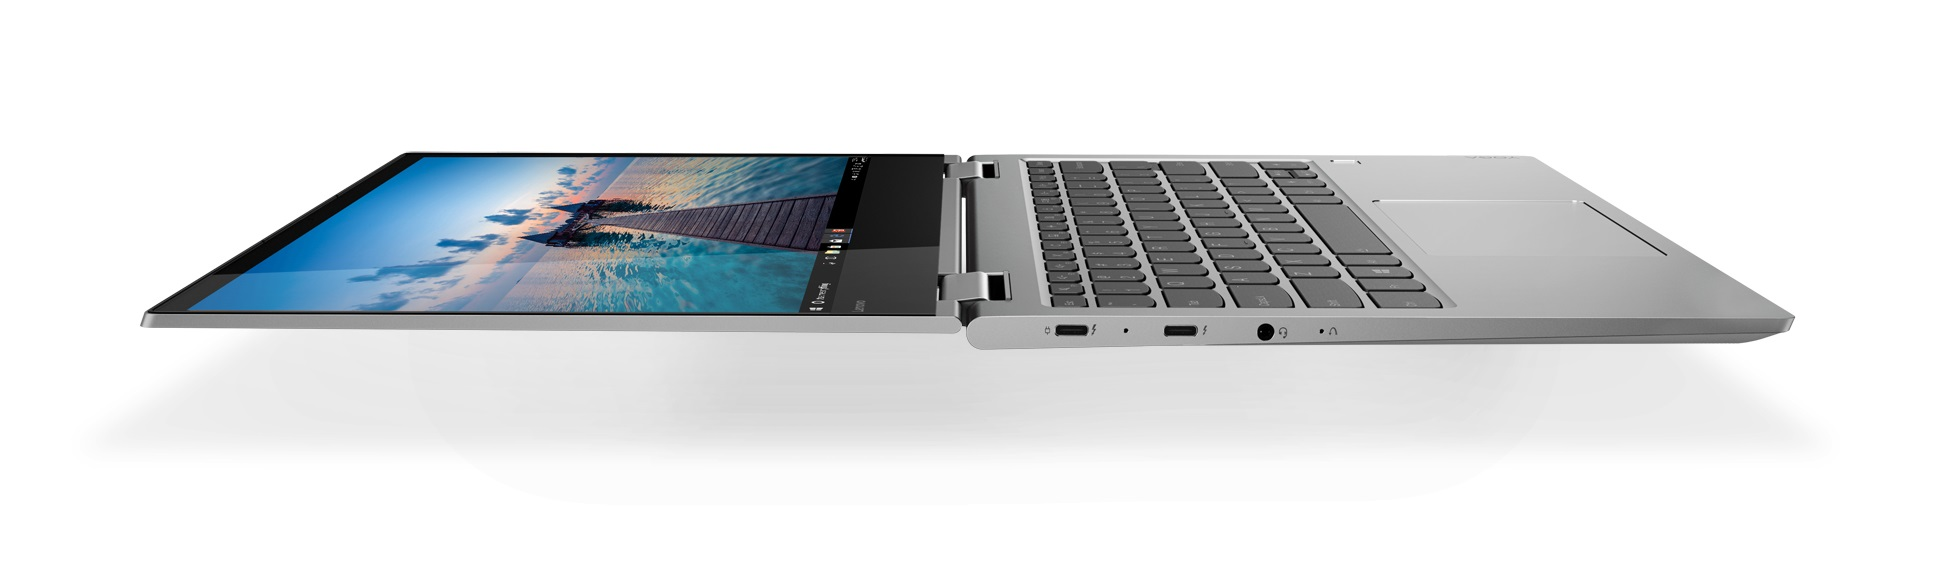 Фото  Ультрабук Lenovo Yoga 730 Platinum (81CT008URA)